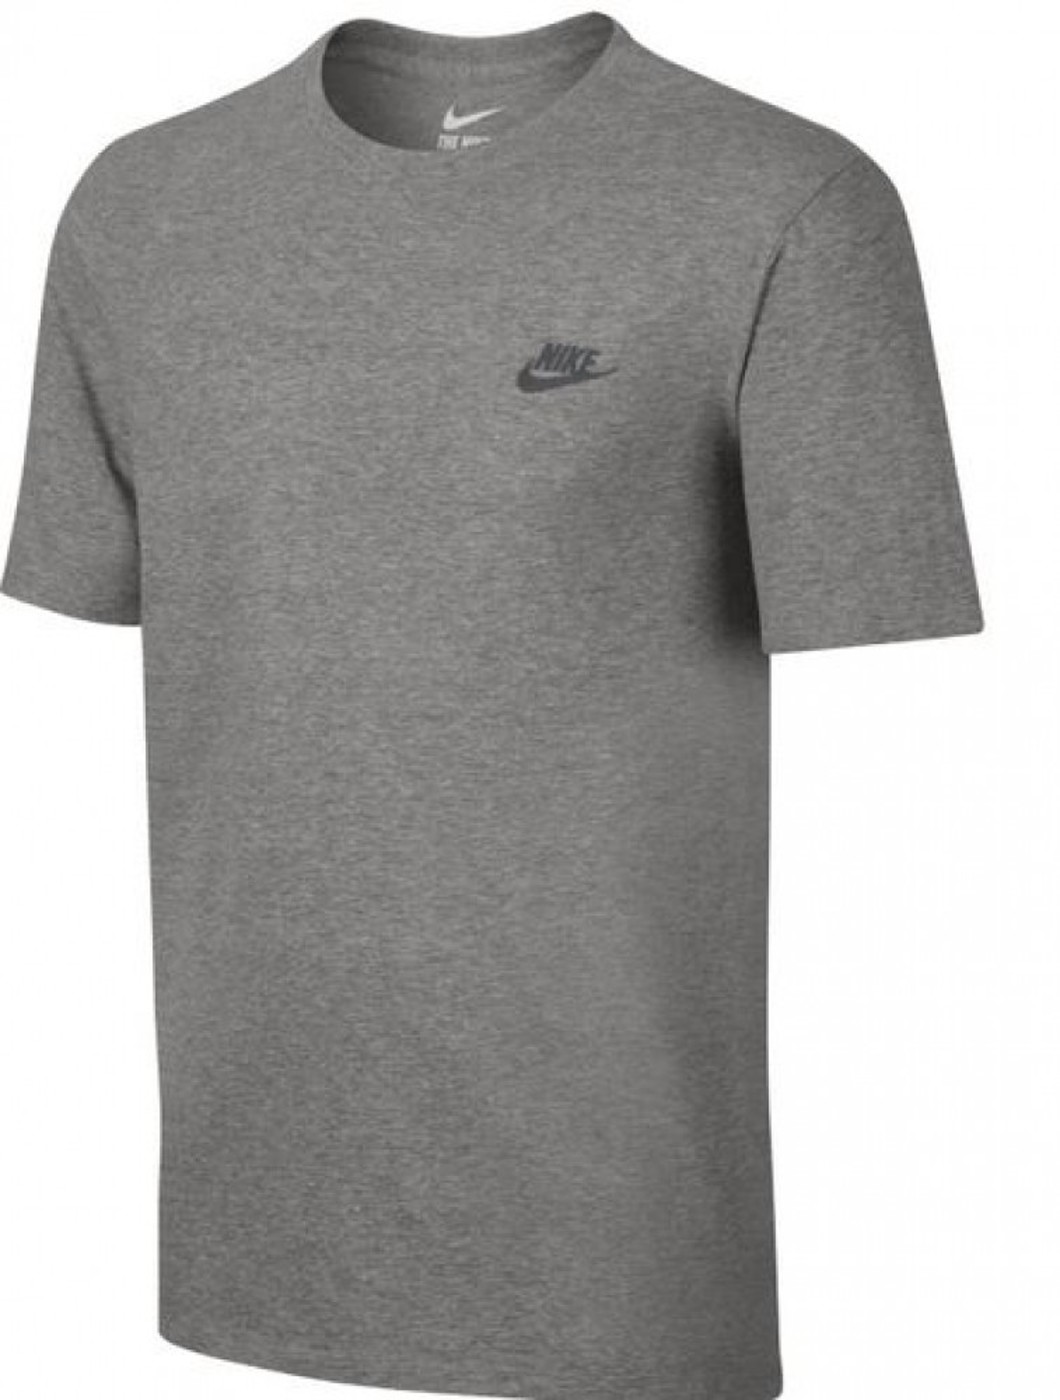 NIKE M NSW TEE CLUB EMBRD FTRA - Herren